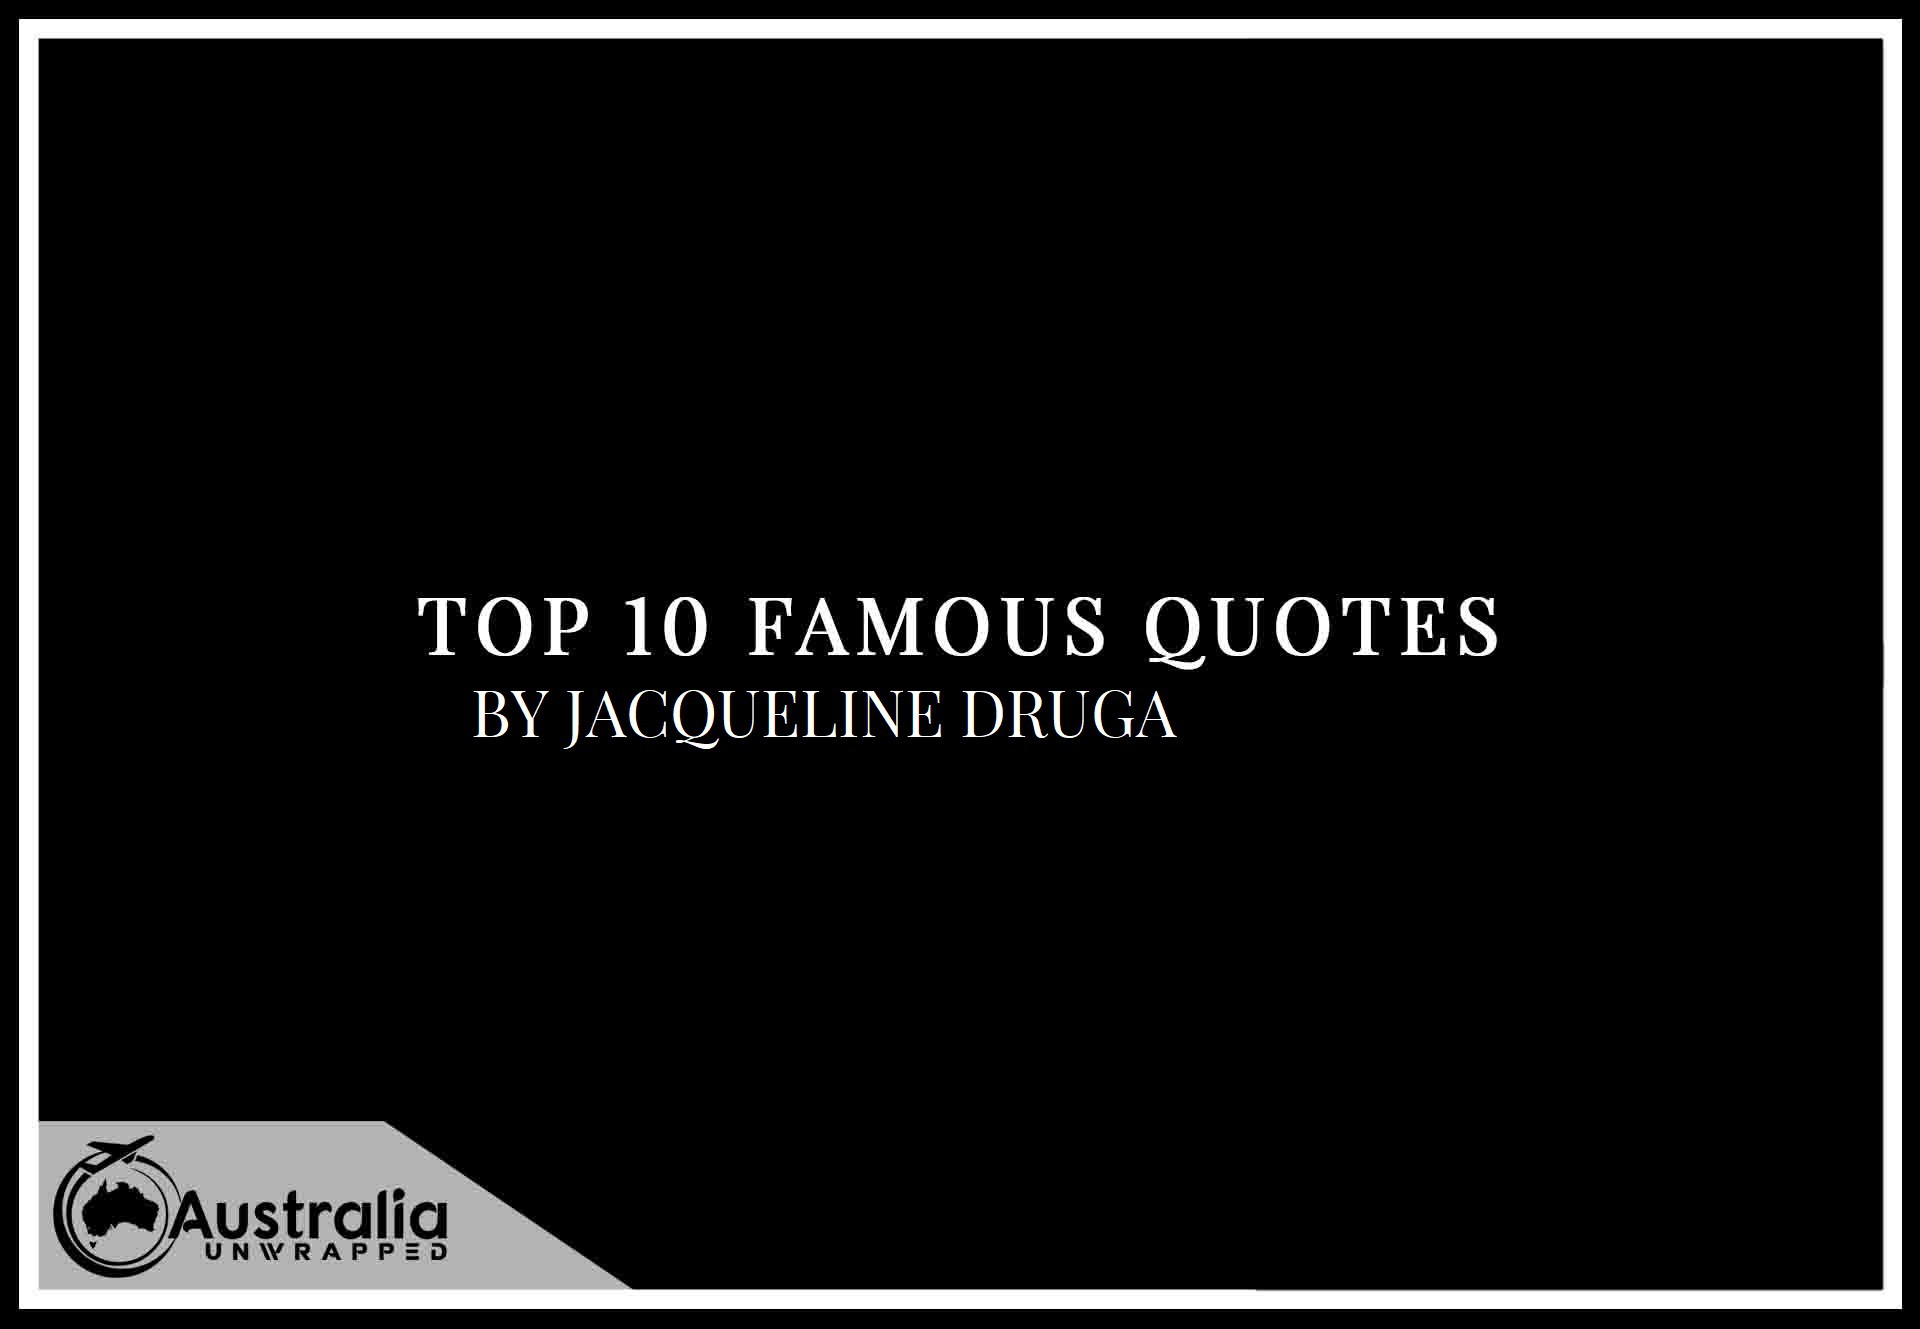 Top 10 Famous Quotes by Author Jacqueline Druga